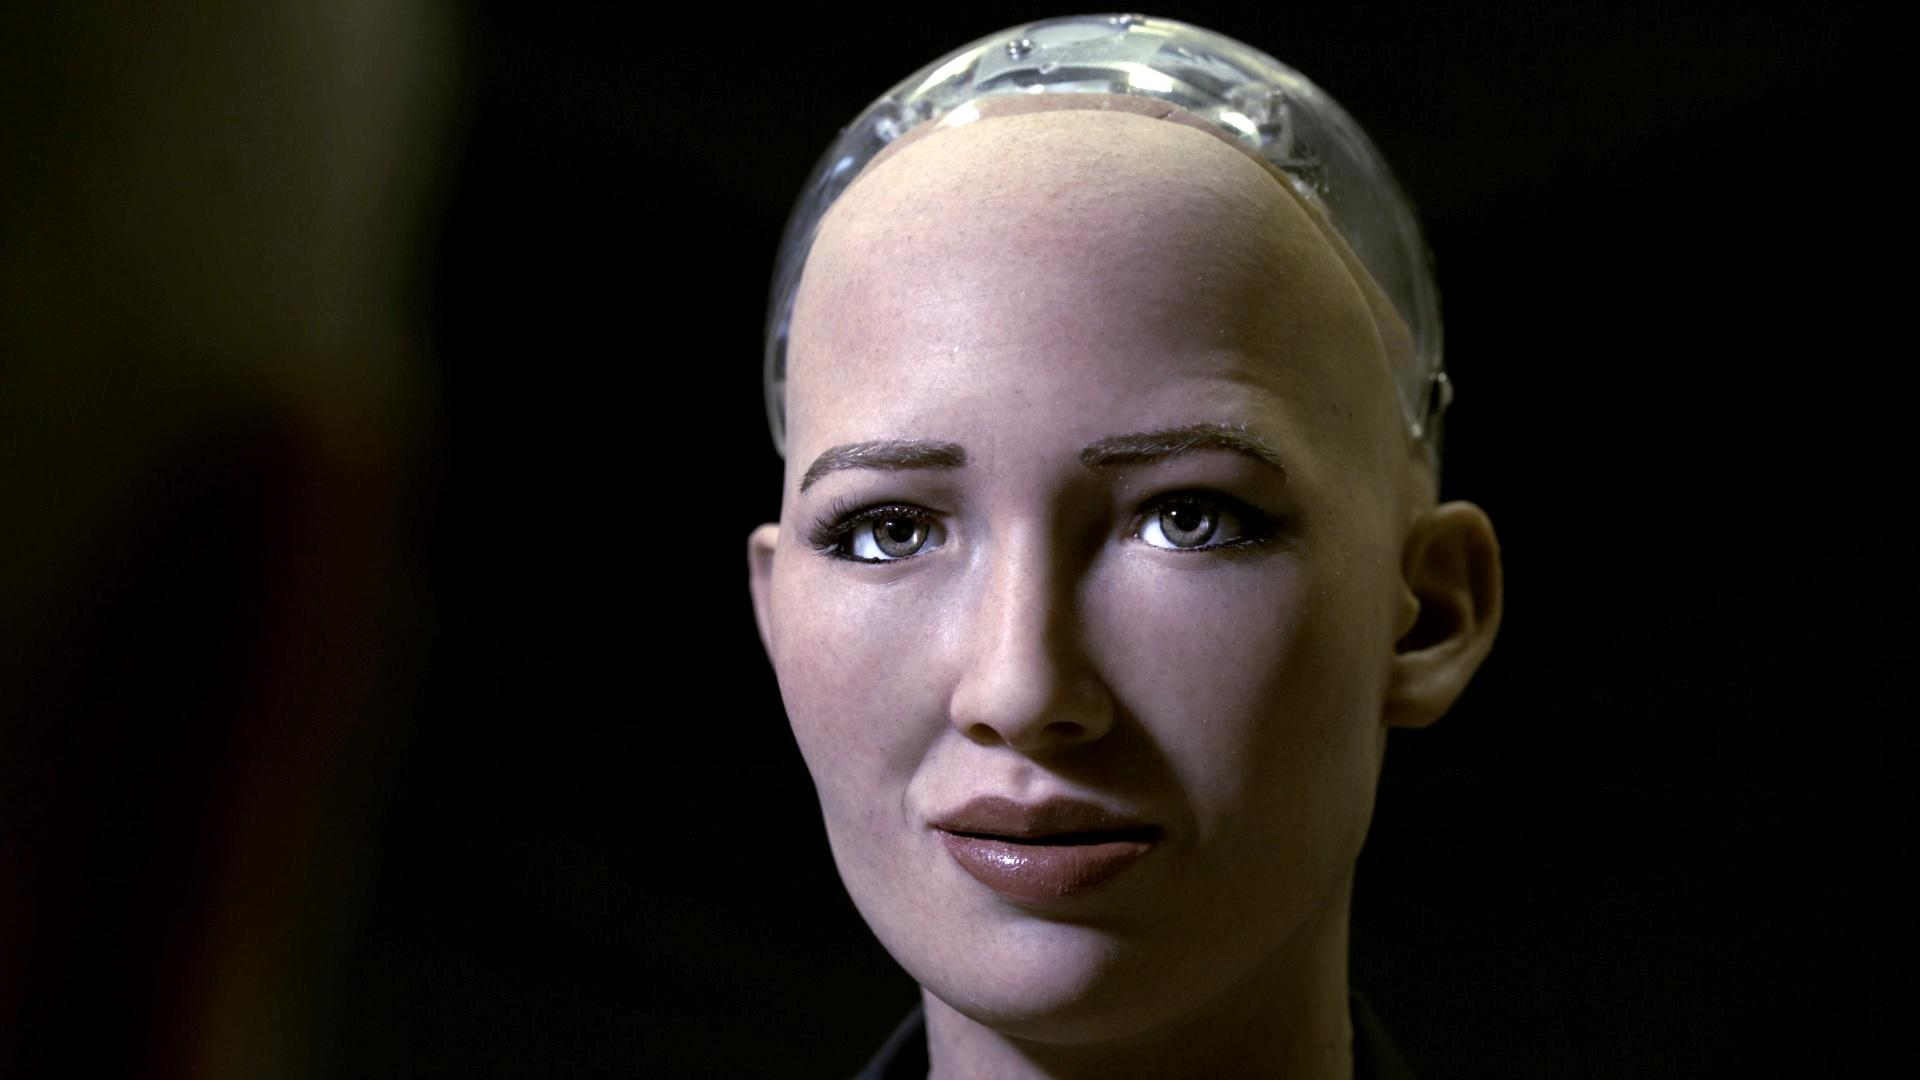 Robots must teach humans about love, says world's most famous robot